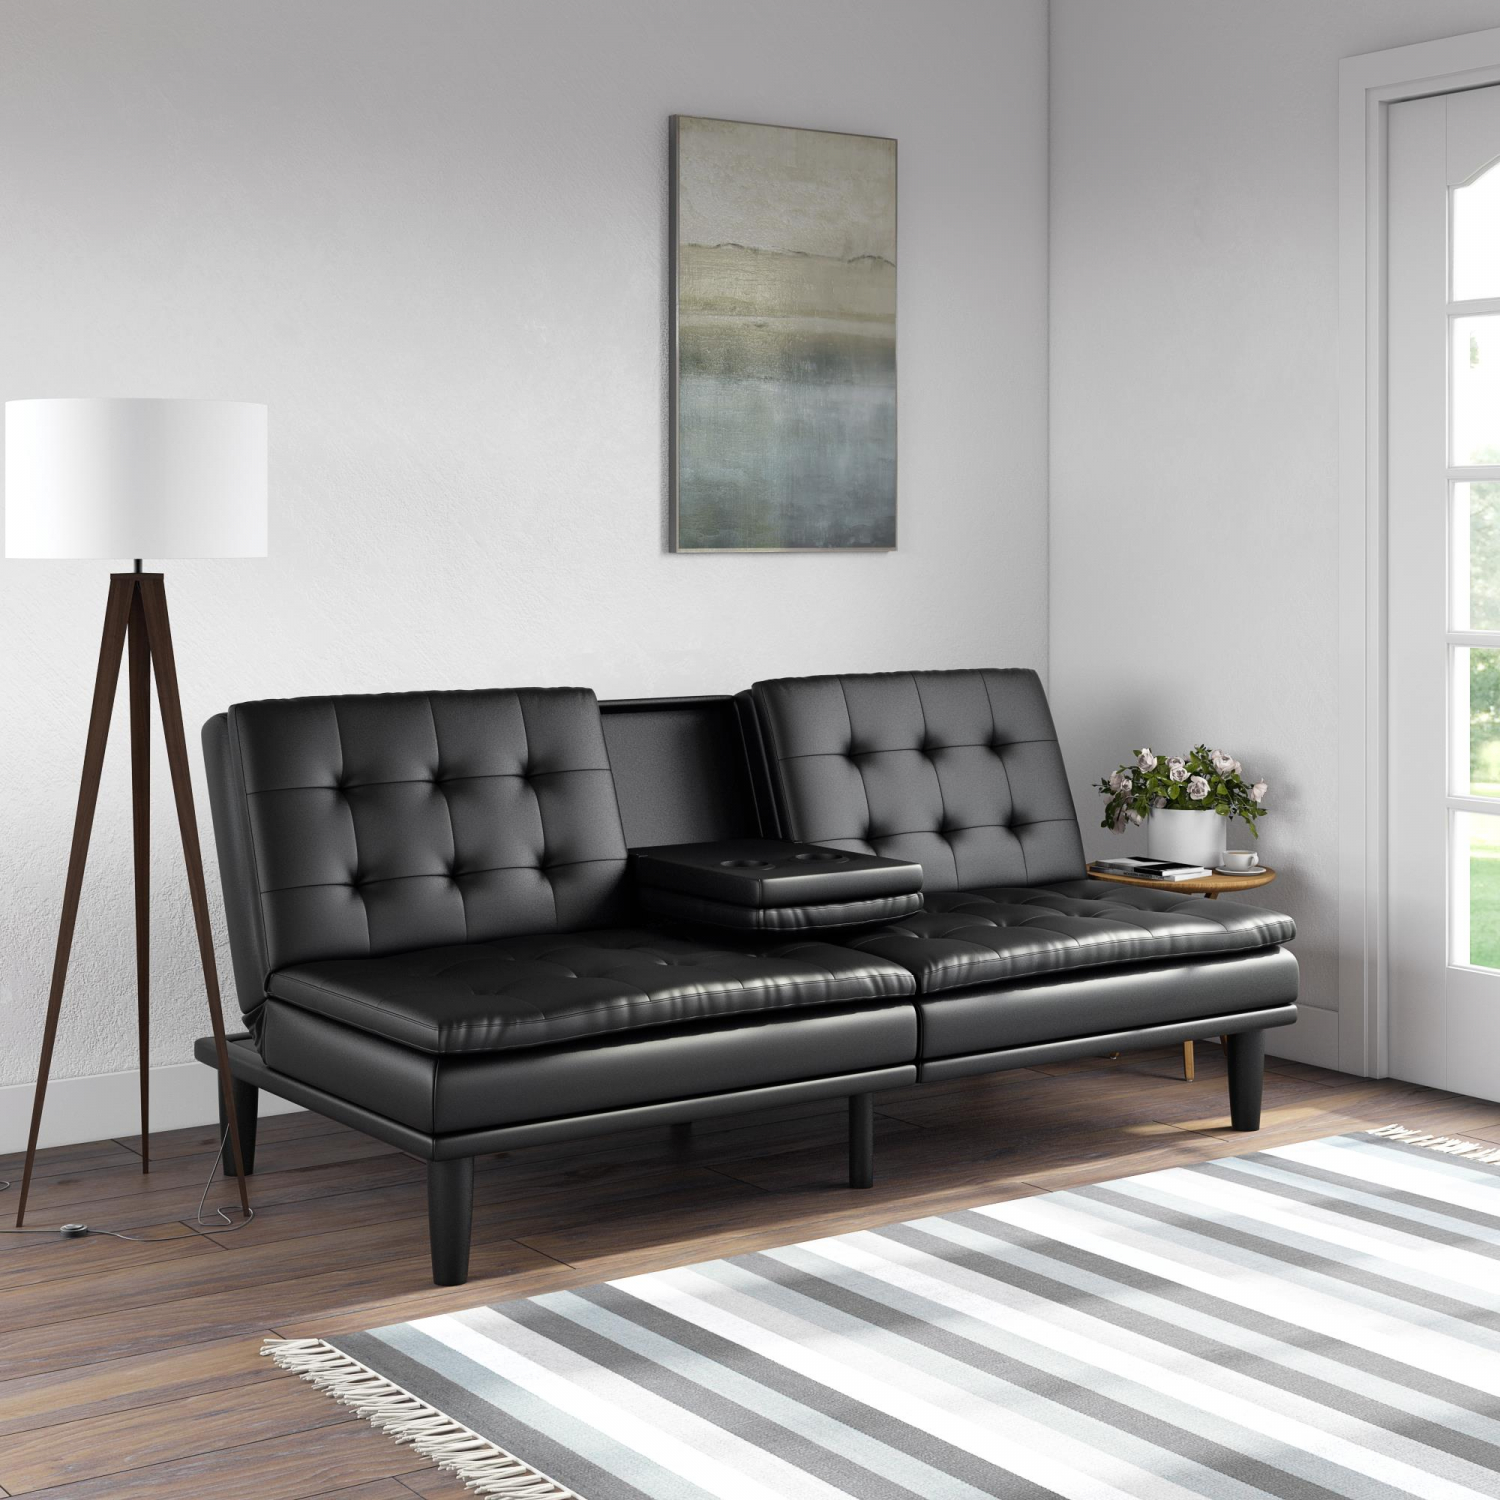 Details about Futon Sofa Bed Pillowtop W Cupholder Mid-Century Modern Style  Faux Leather Black